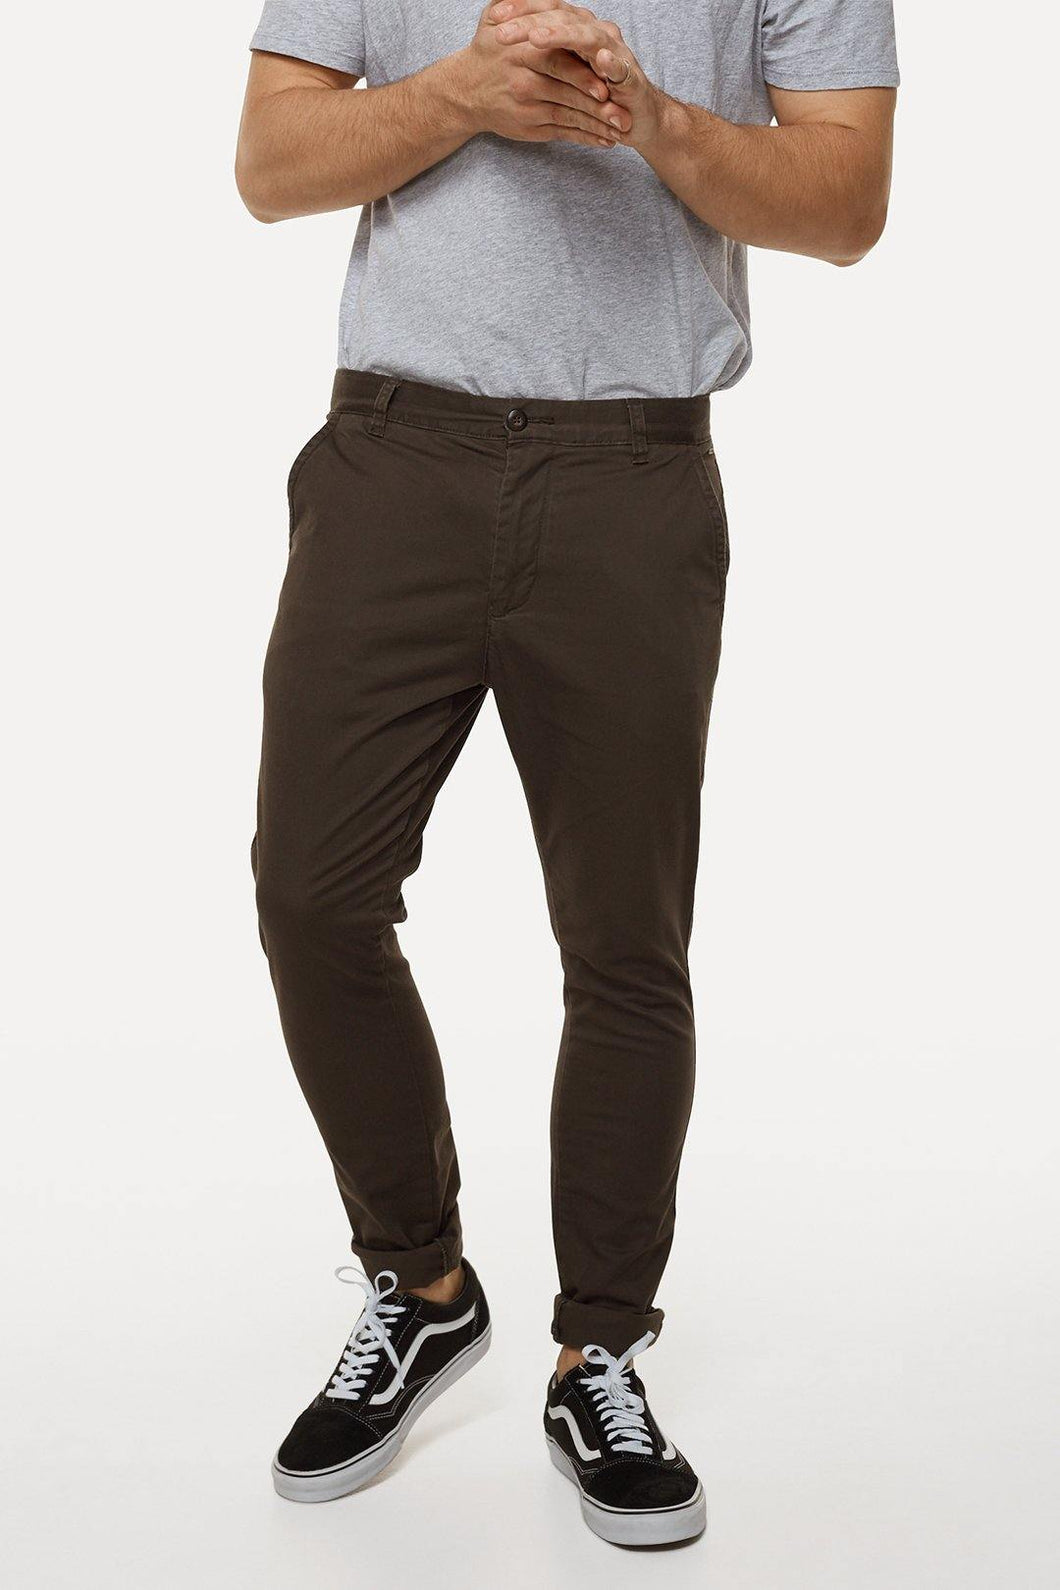 The Cuba Chino Constructed from durable cotton, The Cuba Chino Pants are as reliable as they come. Featuring a modern skinny-cut leg and just the right amount of stretch, this is the ultimate everywhere pair of pants, ready to be dressed up, dressed down, or dressed any way you like. Our model is wearing size medium pants. He is 180cm (5'11